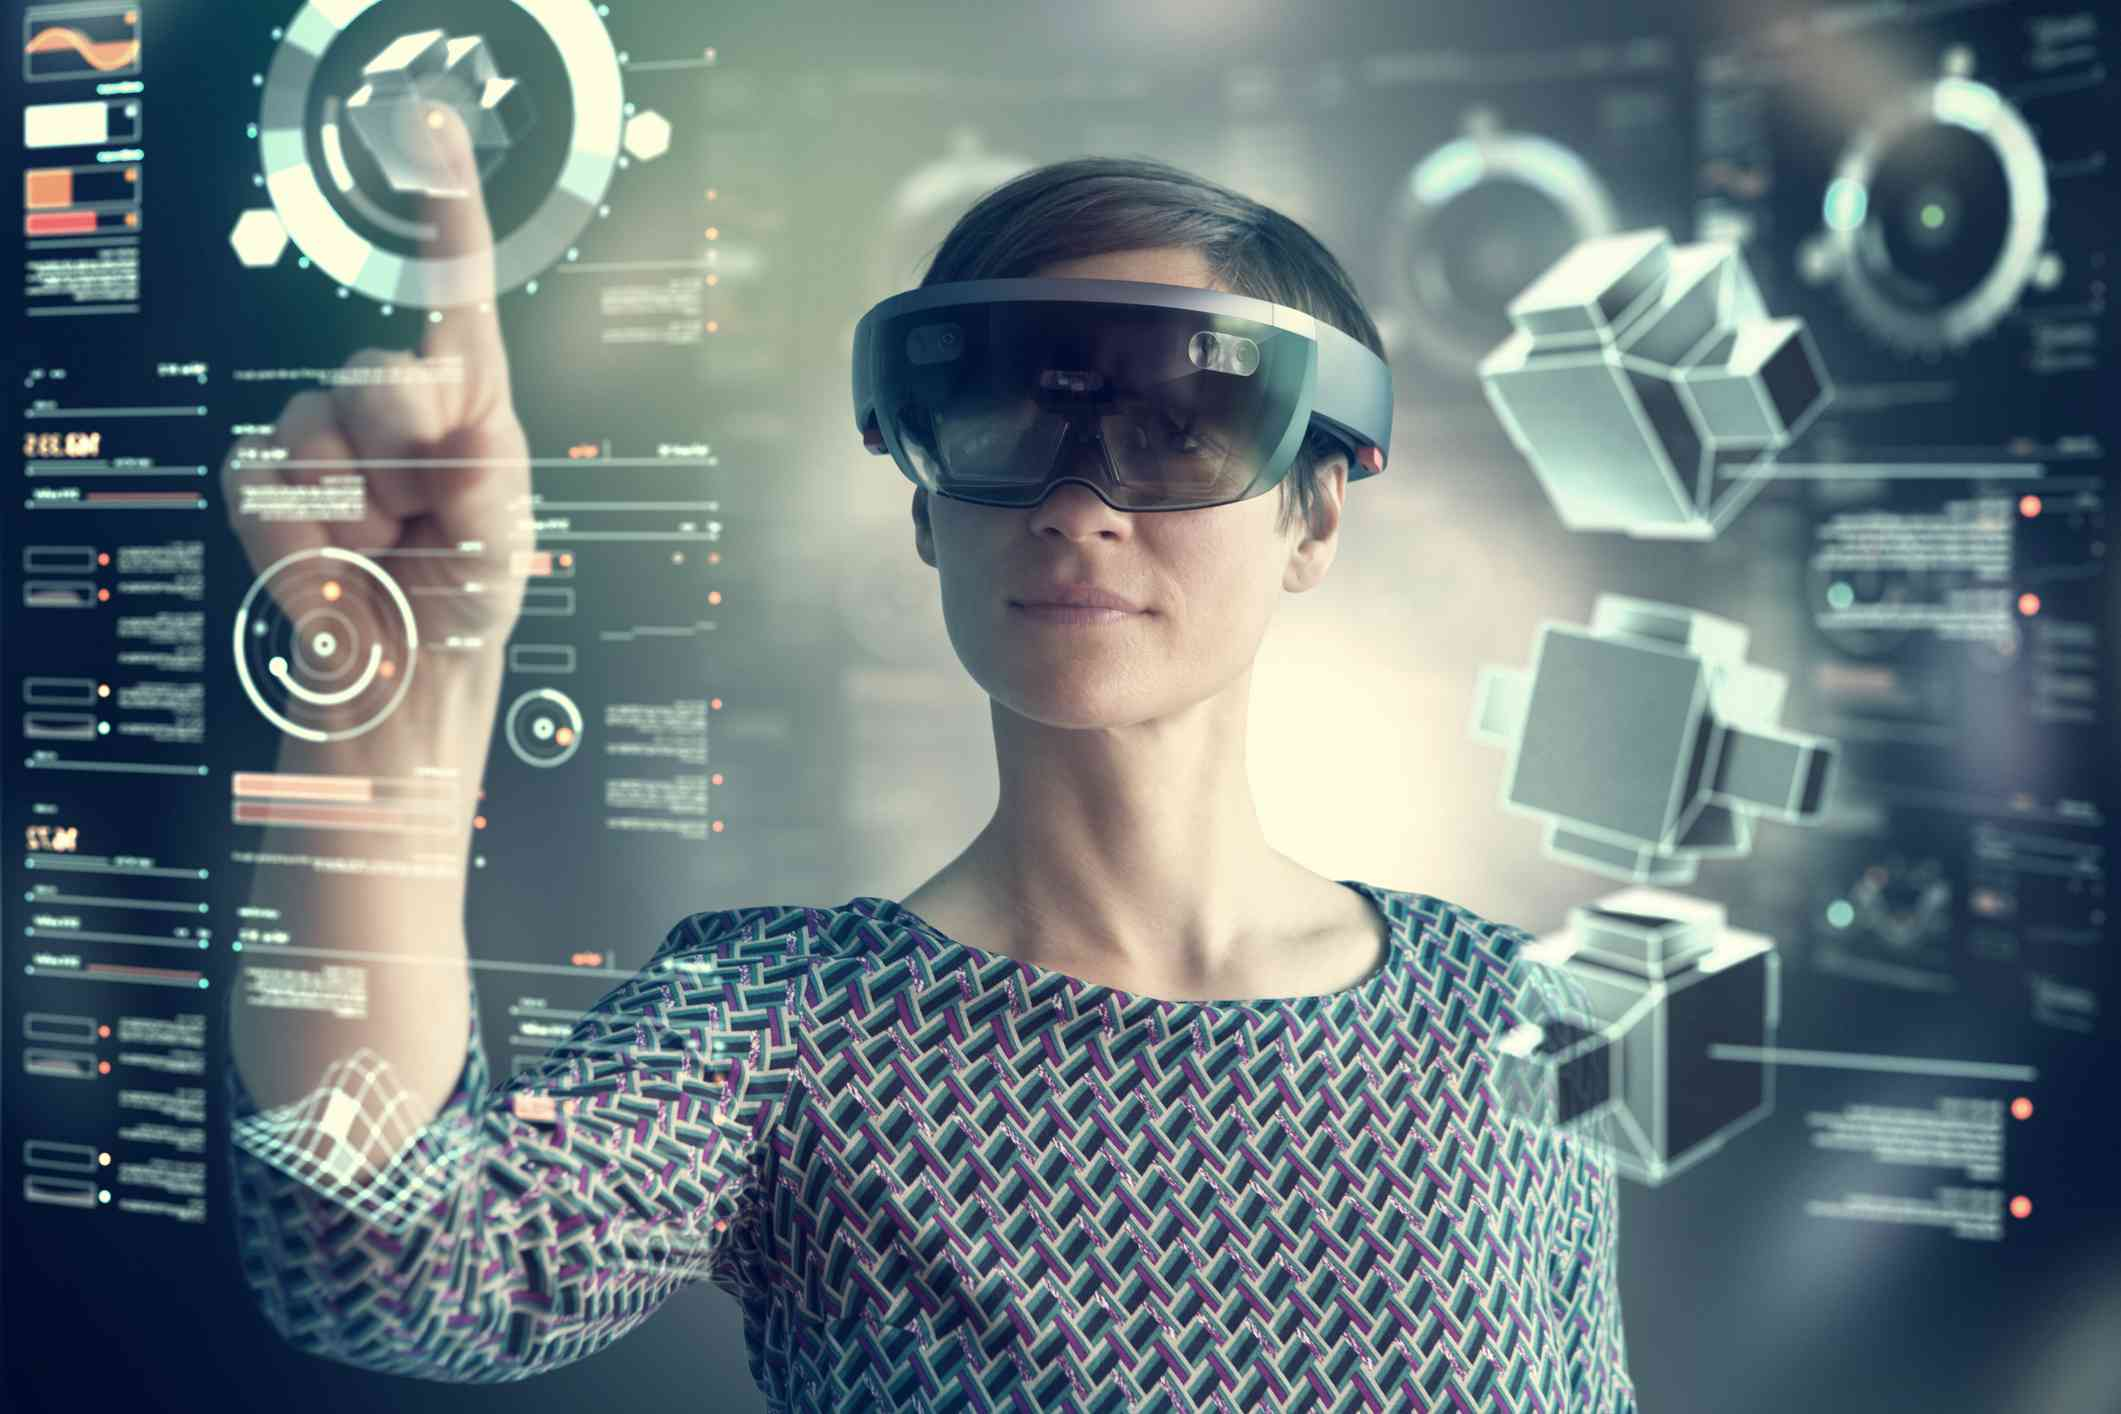 Person tapping virtual interface elements while wearing VR glasses